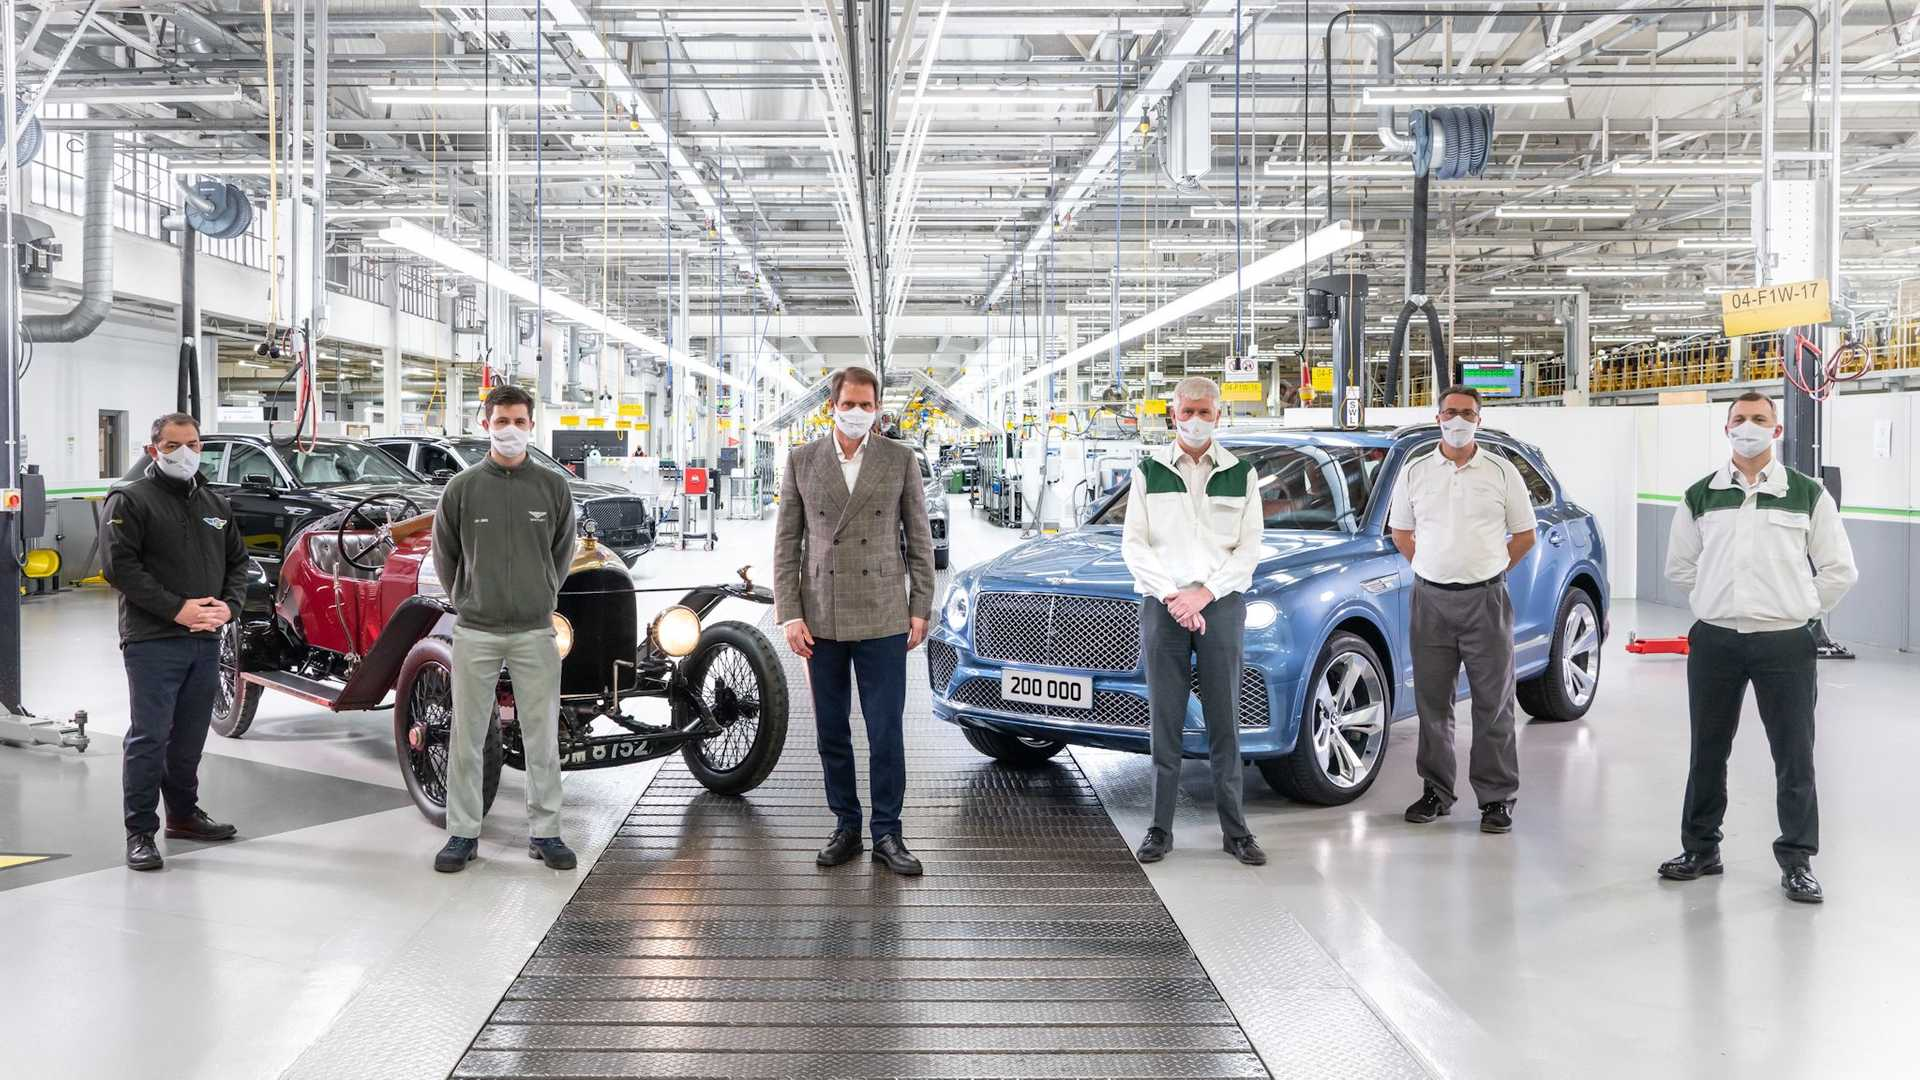 1617095139 928 The 200000th Bentley was produced at the brands 102nd anniversary The 200,000th Bentley was produced at the brand's 102nd anniversary 2